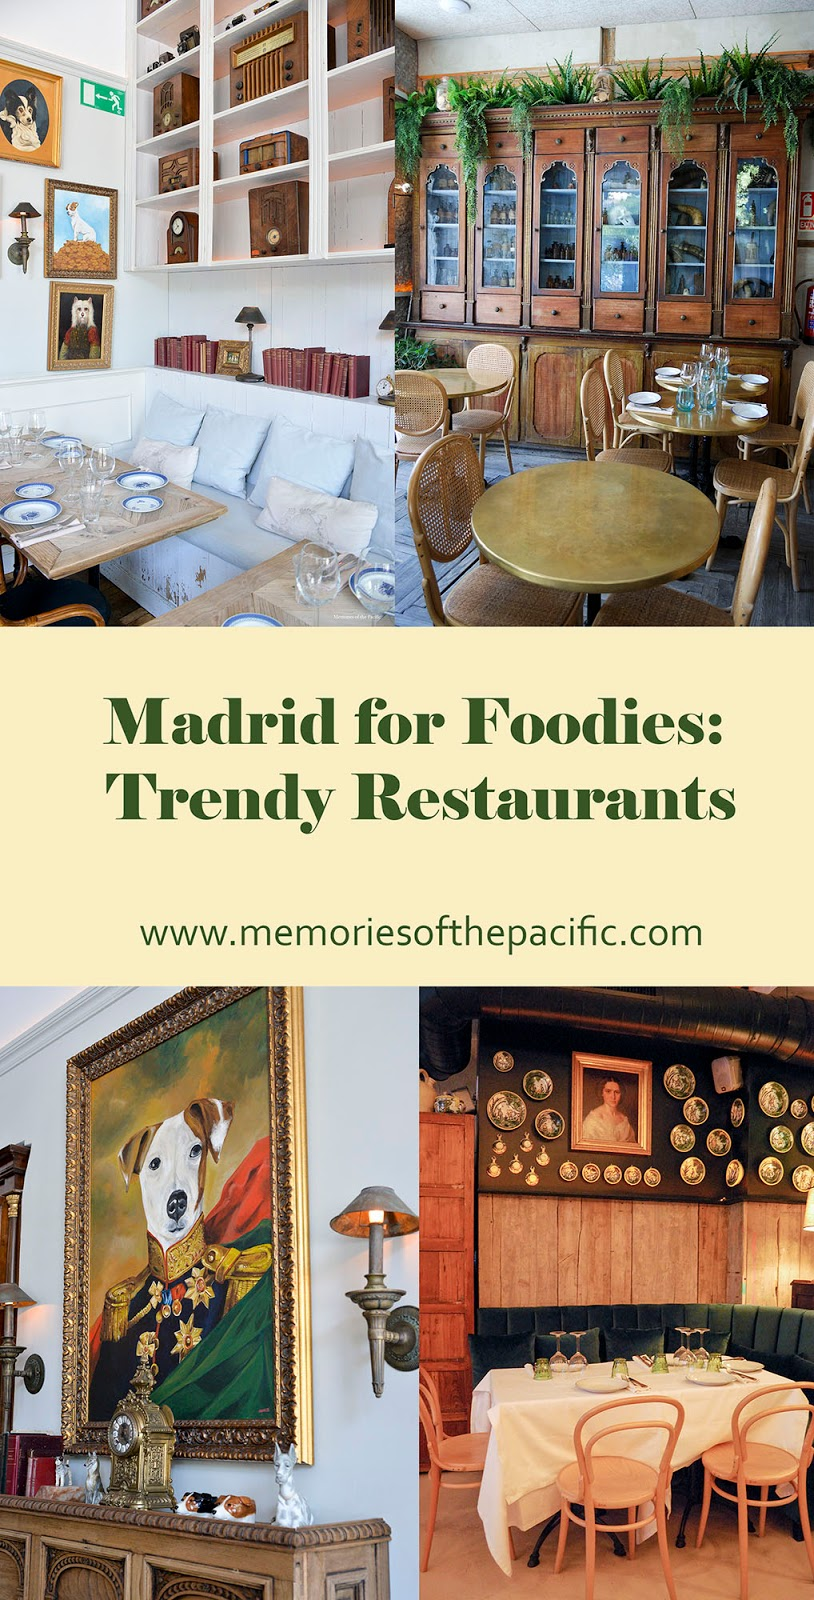 madrid spain foodie trendy cool unique fancy chic best hottest restaurants